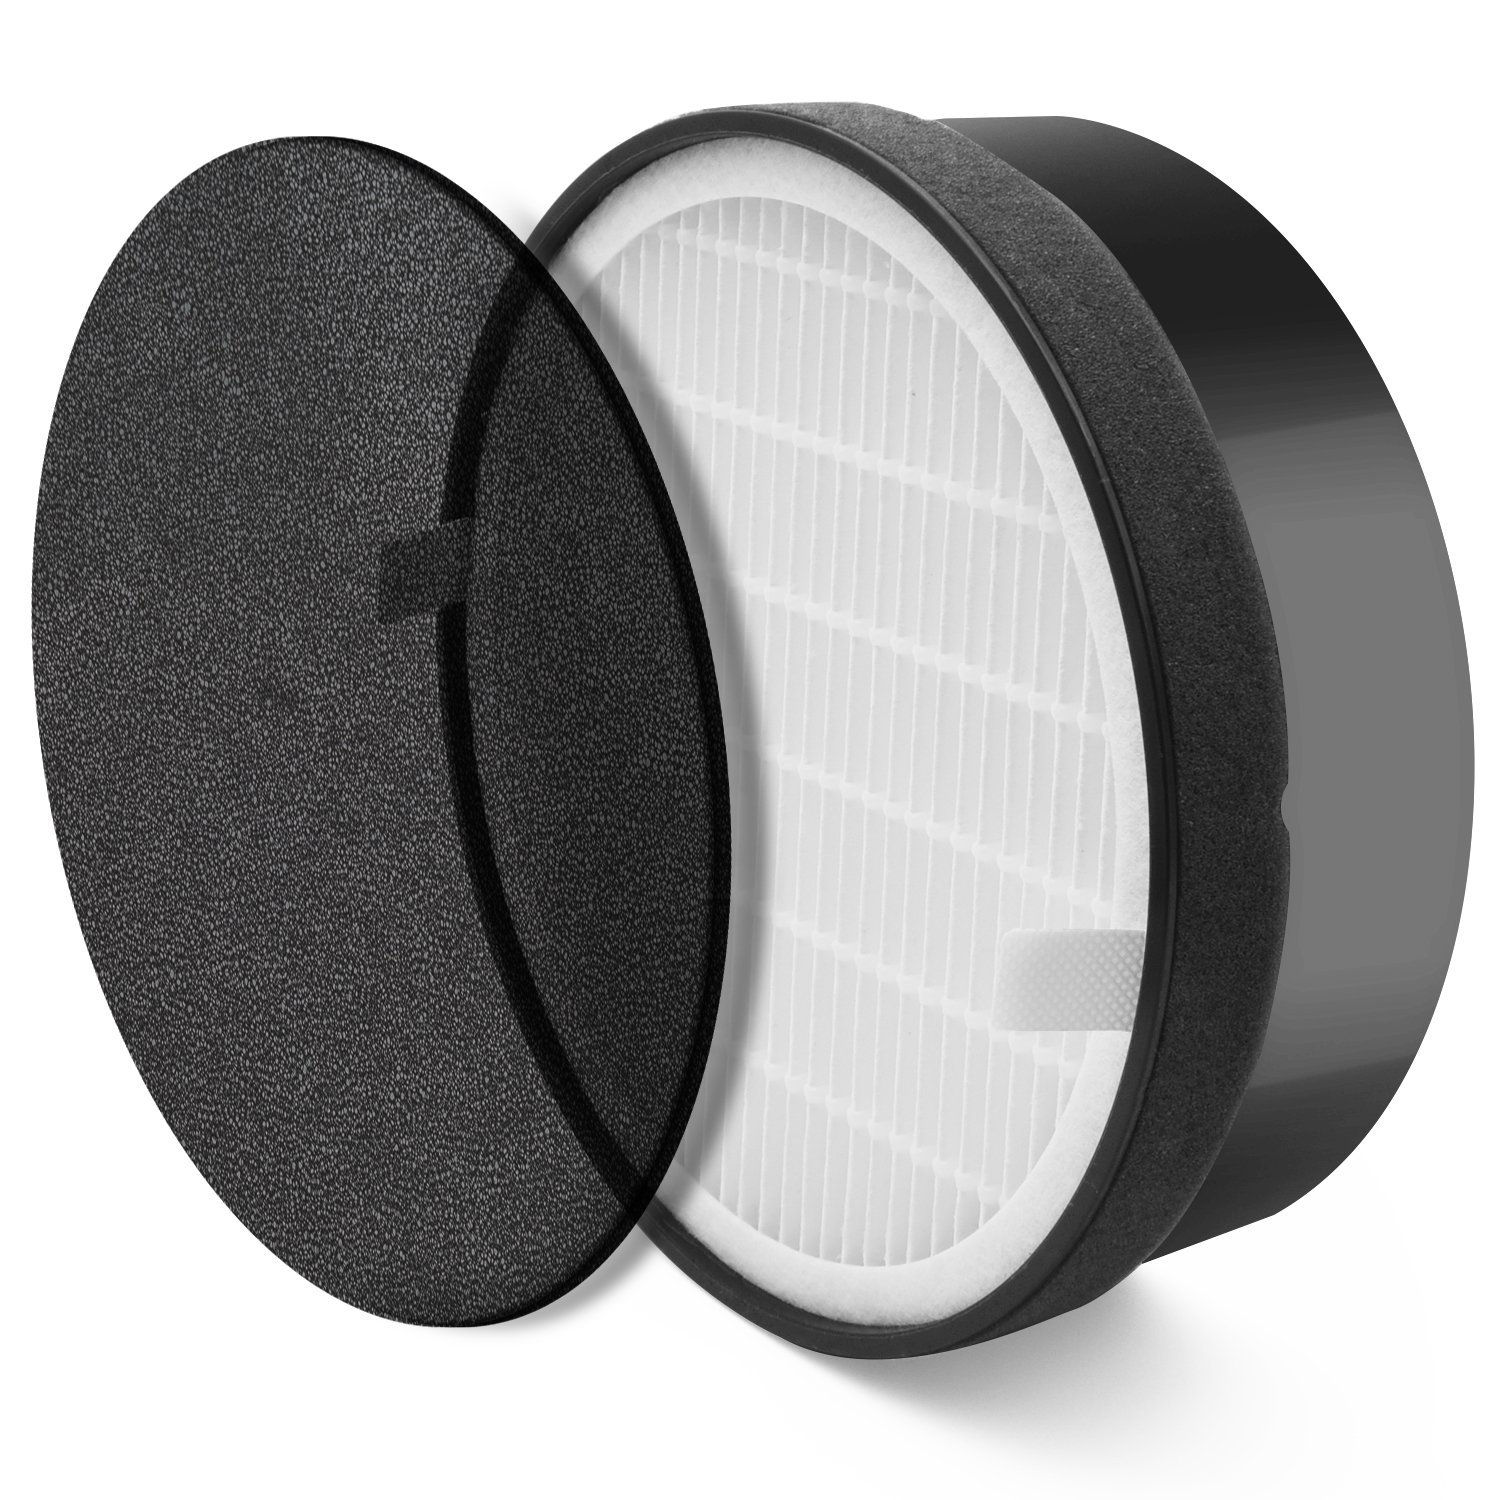 LEVOIT Air Purifier LV-H132 Replacement Filter, True HEPA and Activated Carbon Filters Set, LV-H132-RF by LEVOIT